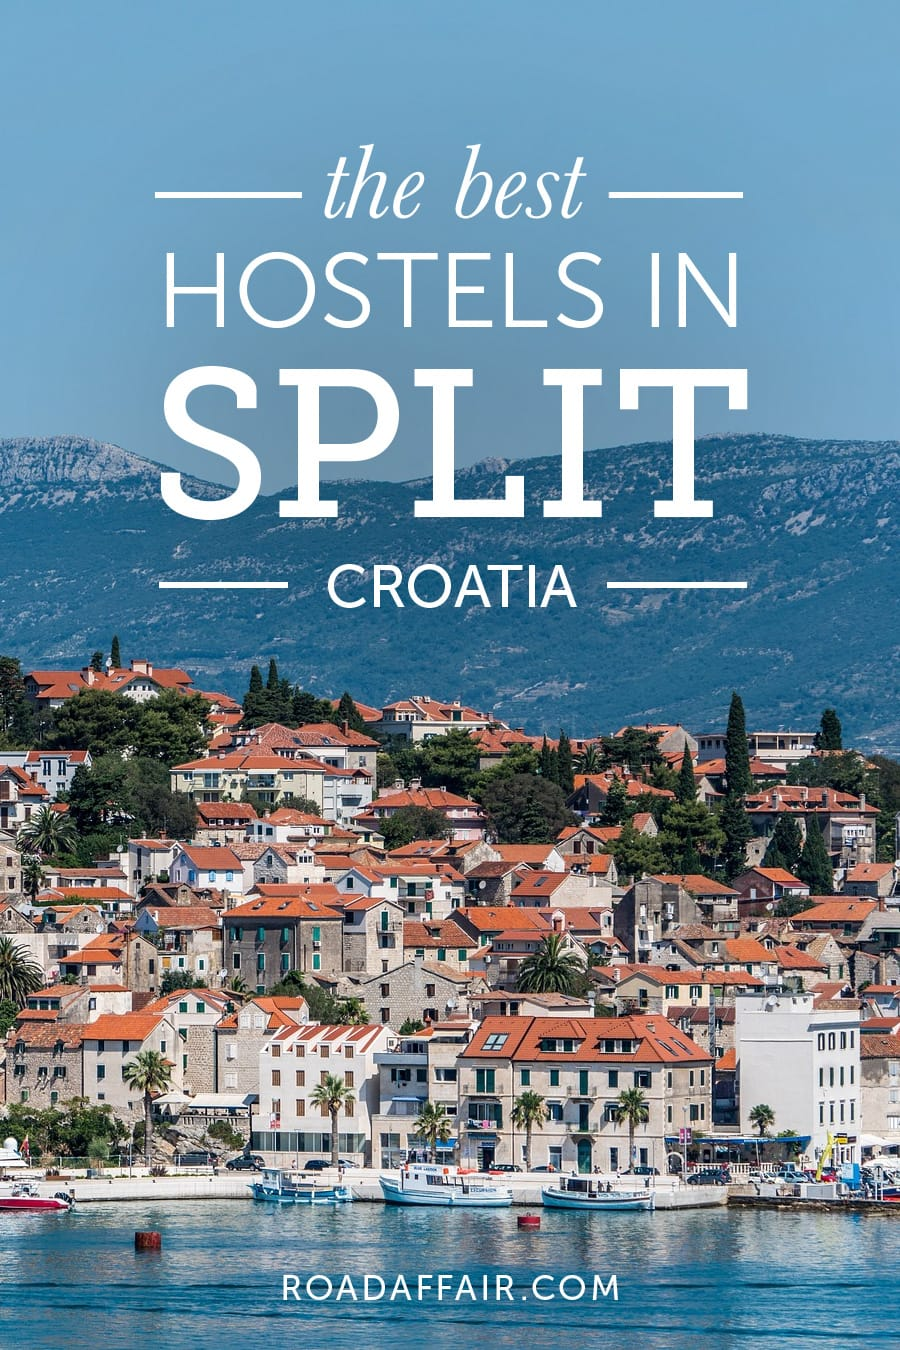 Best Hostels in Split, Croatia